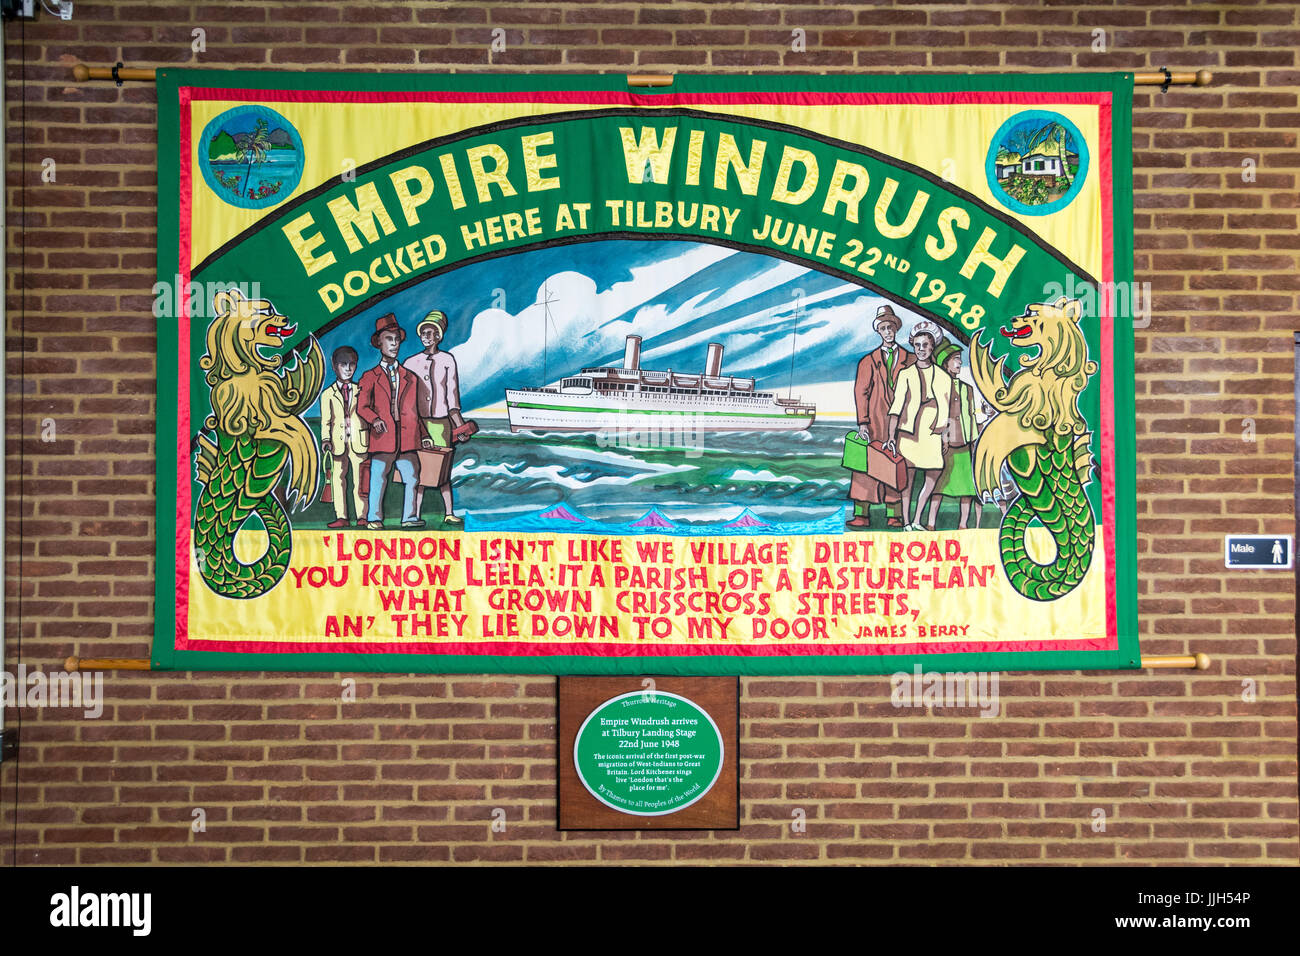 An Empire Windrush commemorative flag and plaque at the London Cruise Terminal at Tilbury Docks, Tilbury, Essex, Stock Photo